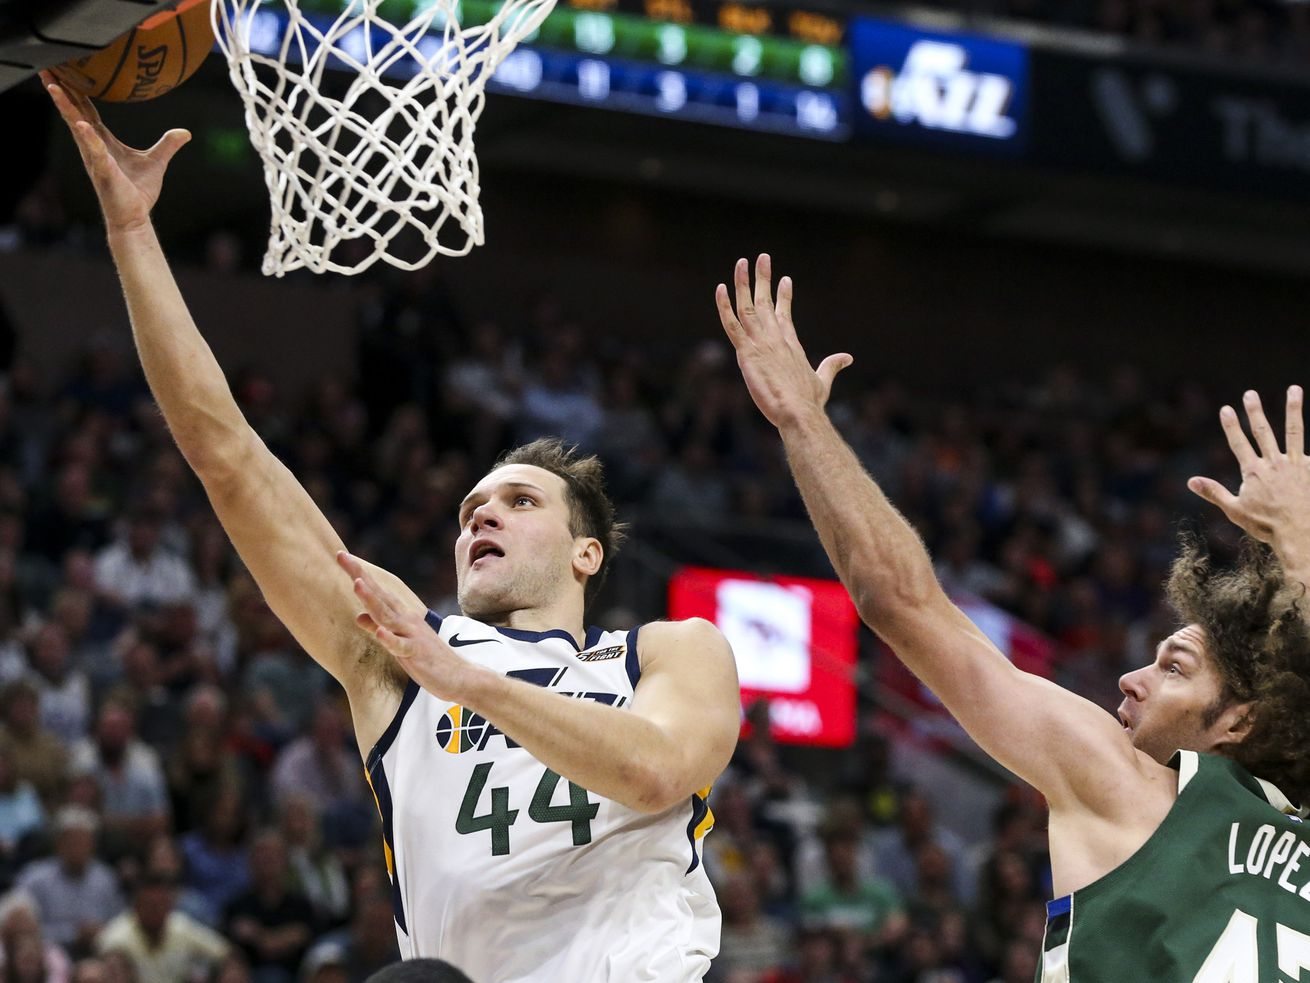 Utah Jazz forward Bojan Bogdanovic (44) goes for a layup over Milwaukee Bucks center Robin Lopez (42) during the second half of an NBA basketball game at Vivint Arena in Salt Lake City on Friday, Nov. 8, 2019.